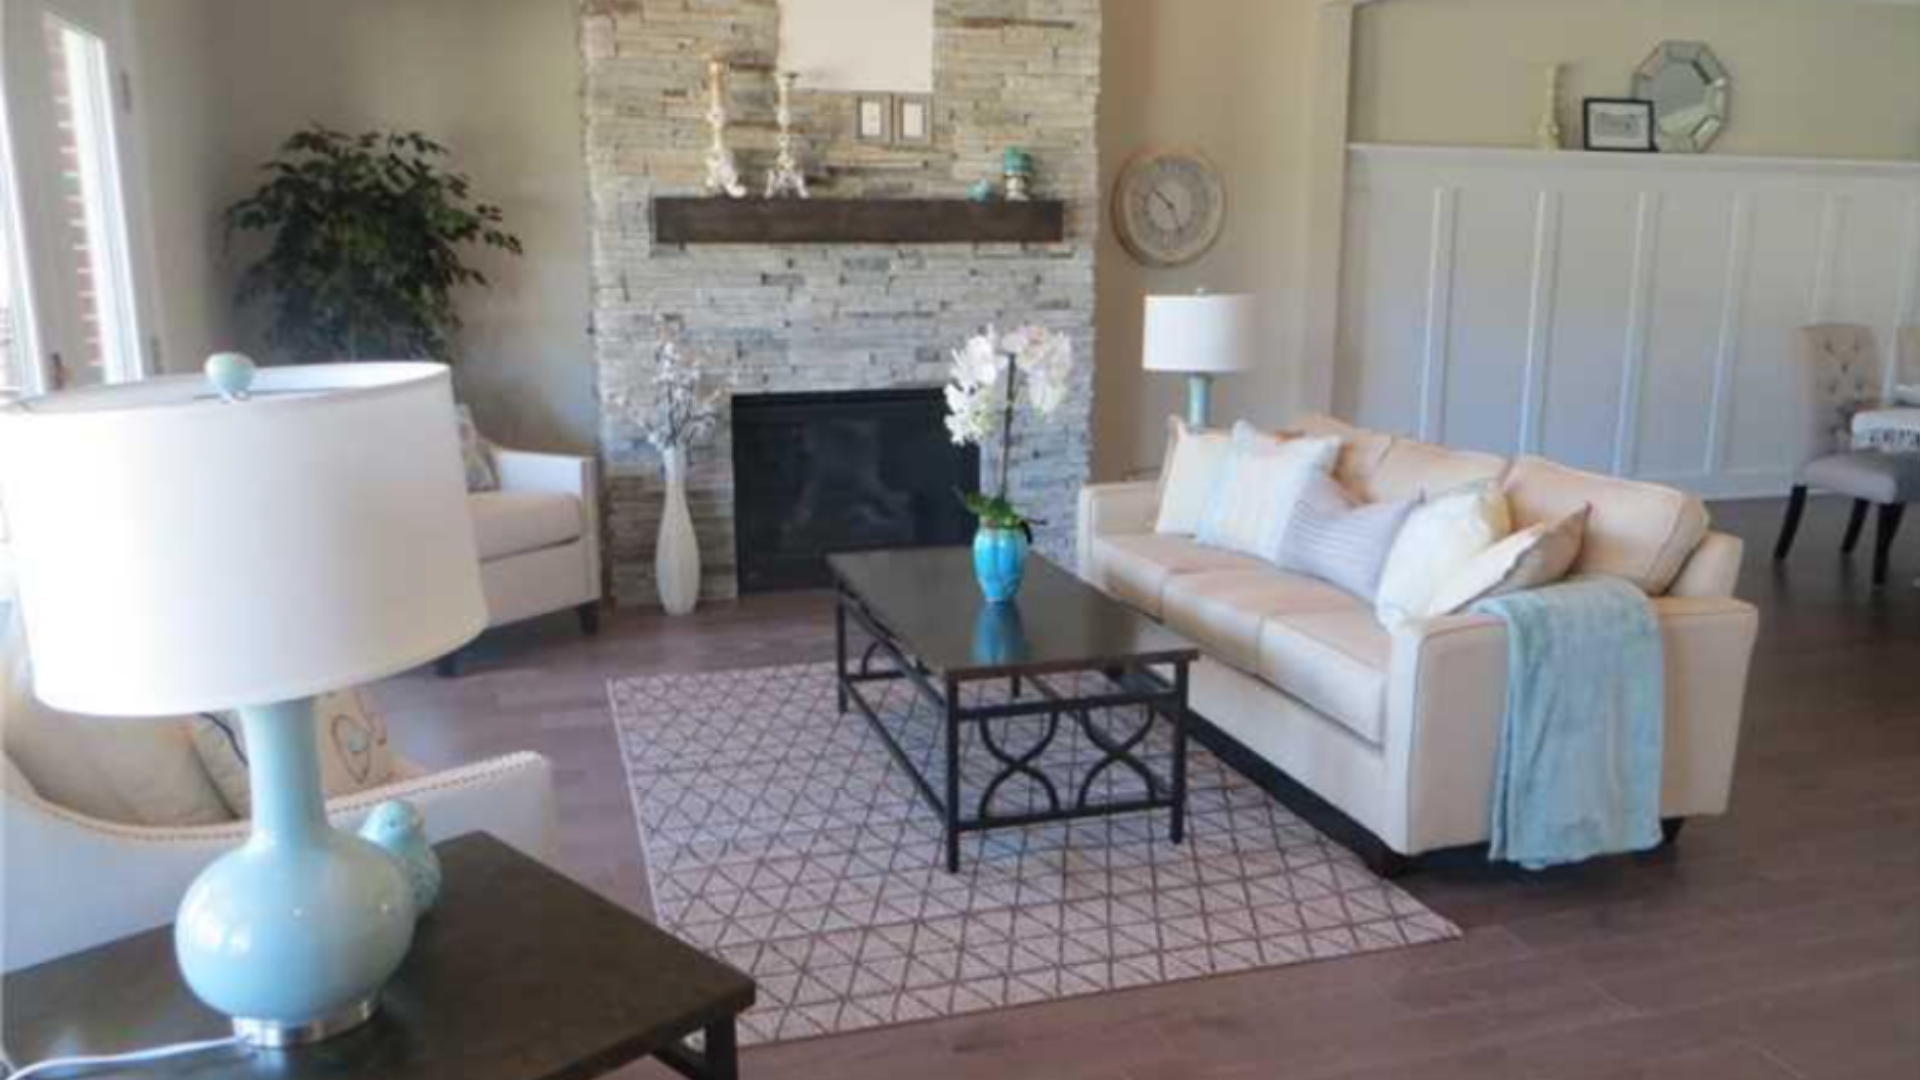 Transitional white cream leather sofa slope arm accent chairs trellis pattern area rug | Michael Helwig Interiors|